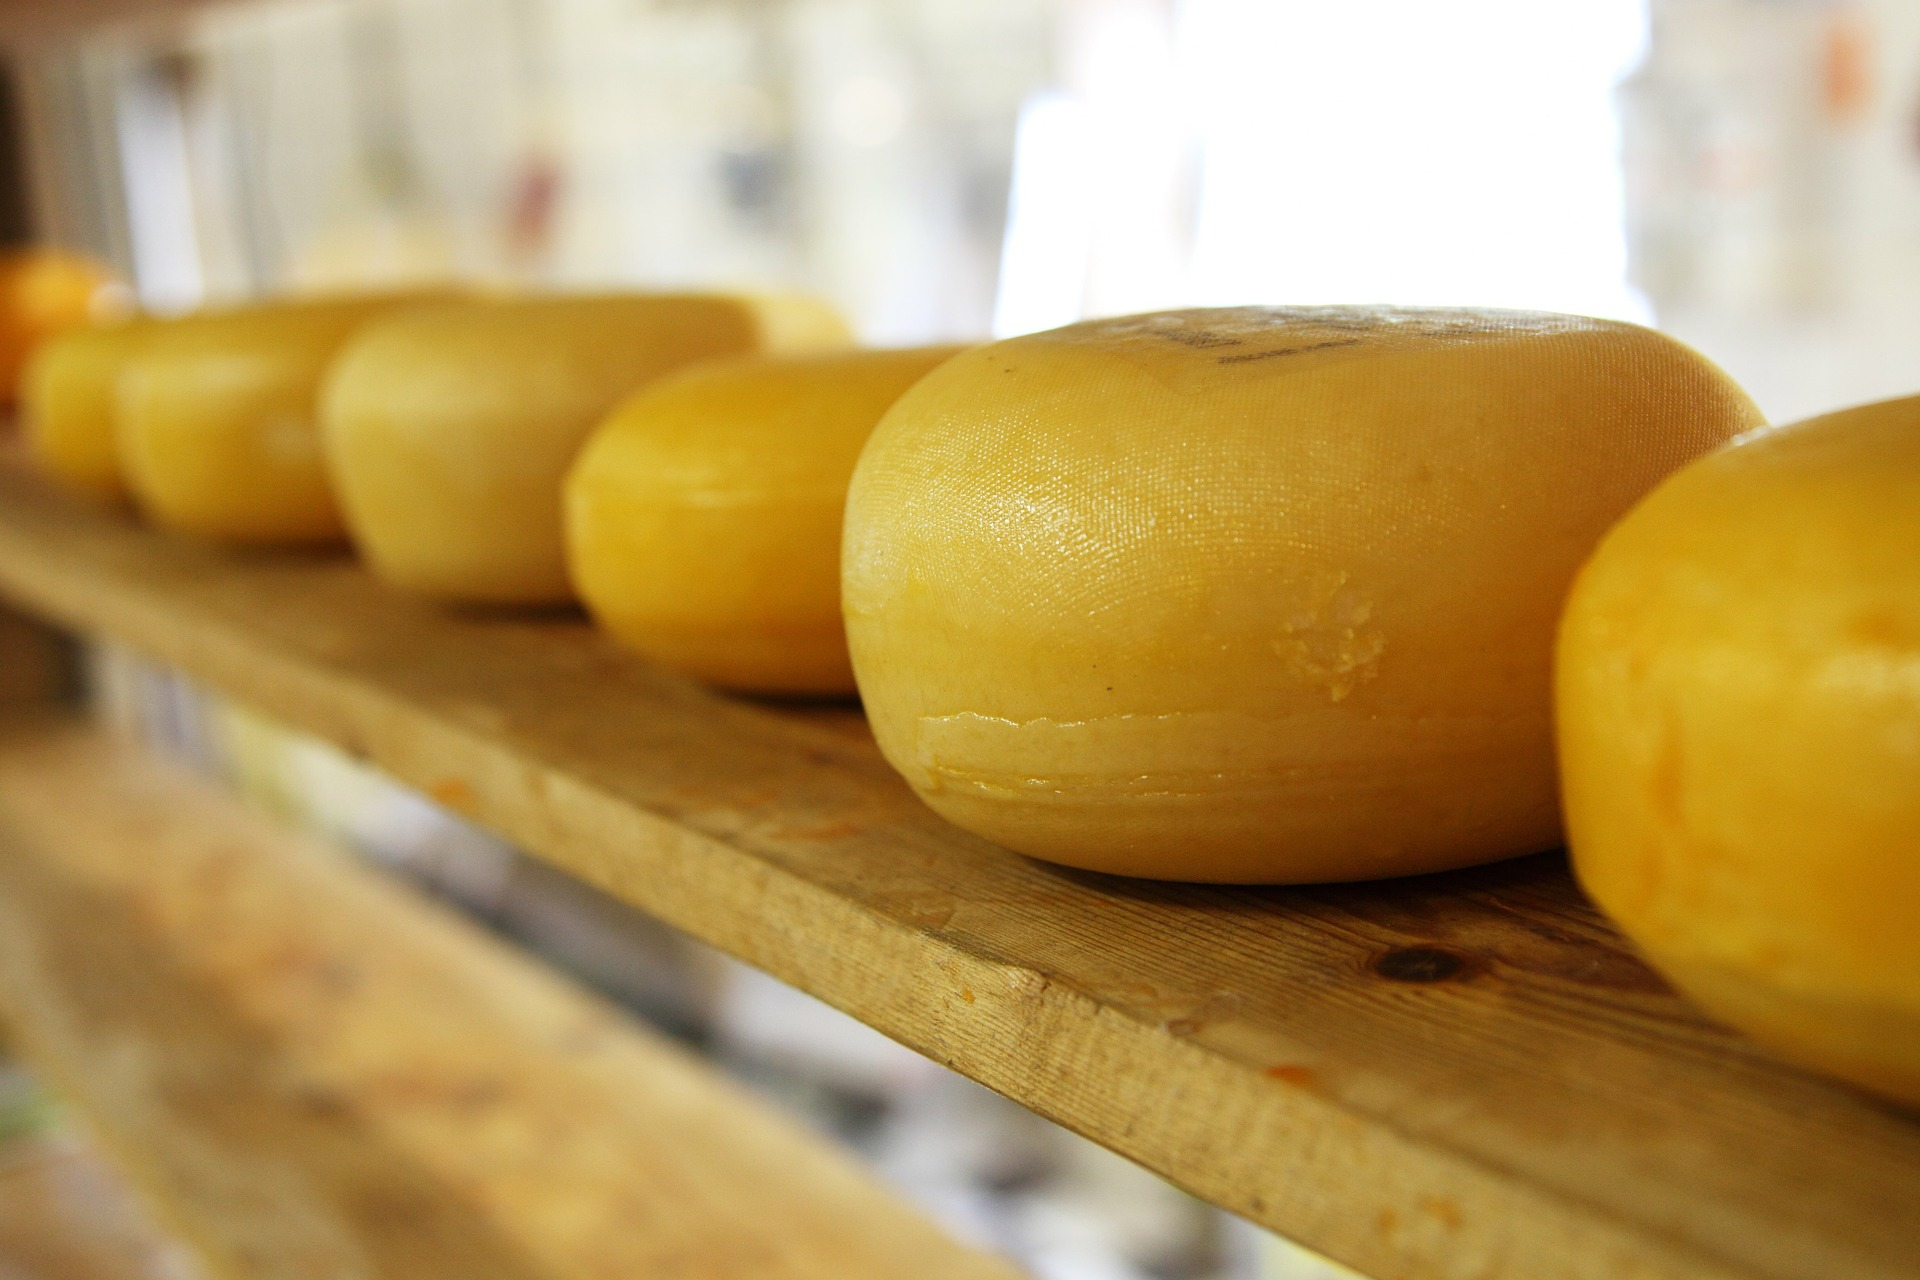 Cheese. Pixabay License. Free for commercial use. No attribution required.